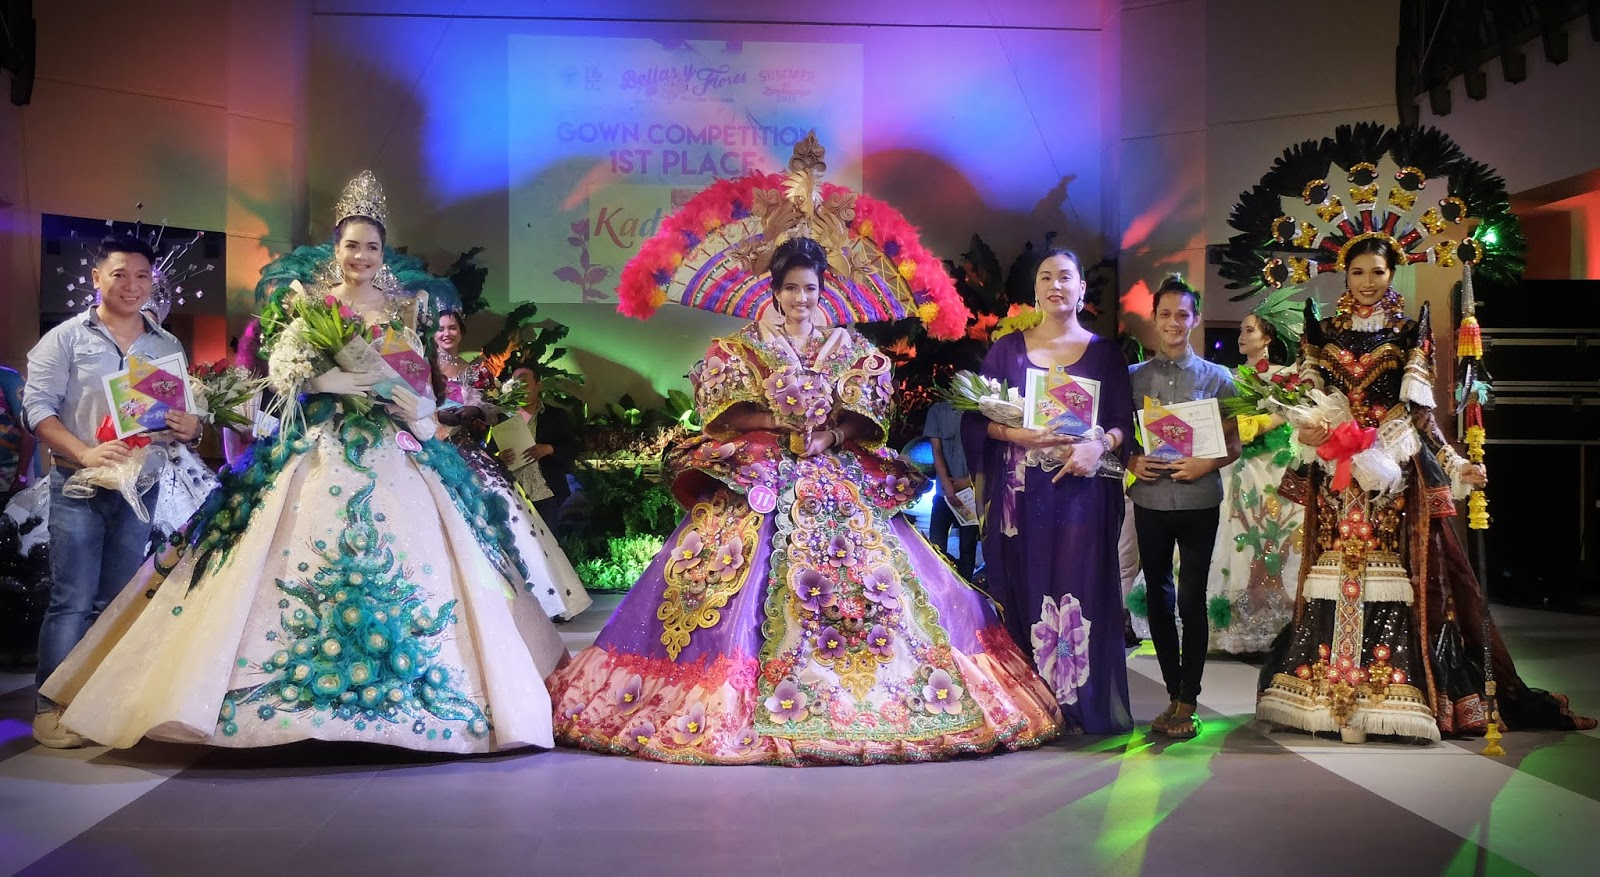 The Top 3 winners in the Gown Competition 1st Place - Kadayawan by Geronie Labora, 2nd Place - Binatbatan Festival by Federico Navarro, and 3rd Place - Ati-atihan Festival by Nicole Salih Festival de las Bellas y Flores Gown Competition National Costume